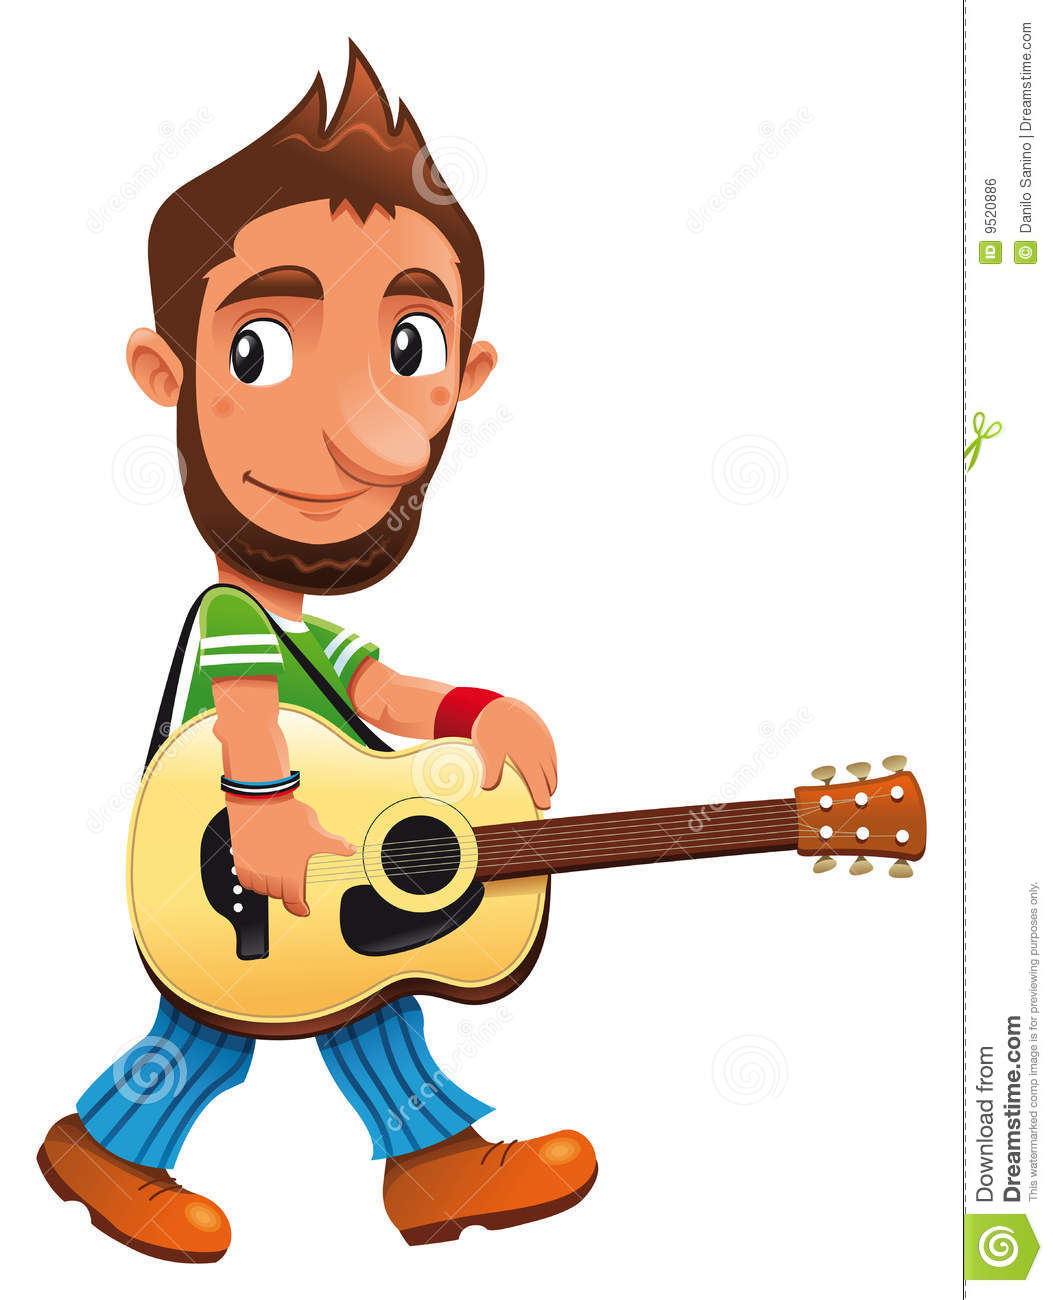 Funny Musician Royalty Free Stock Image - Image: 9520886